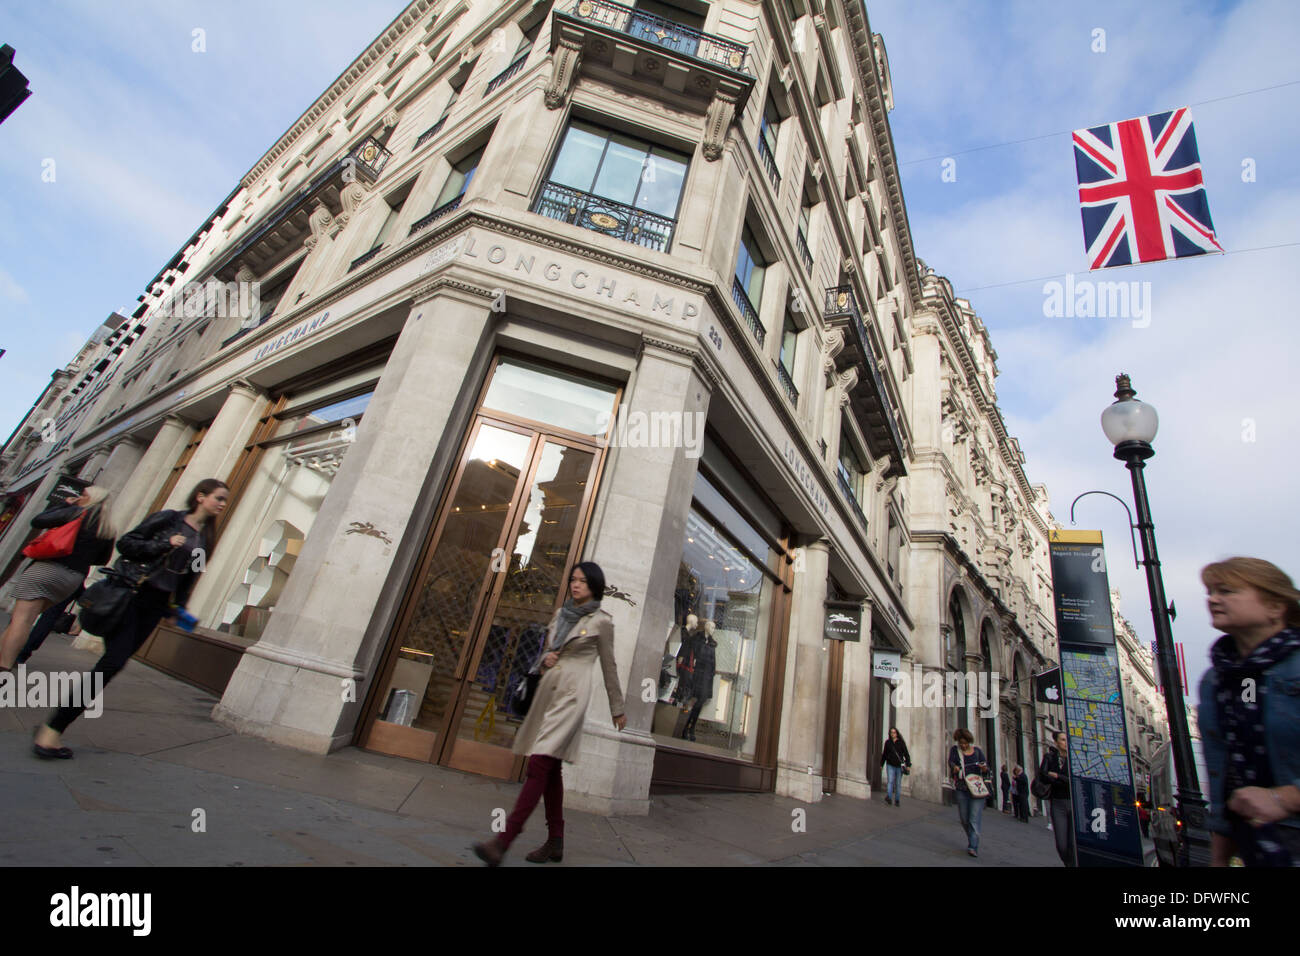 Longchamps fashion outlet Regent Street - Stock Image